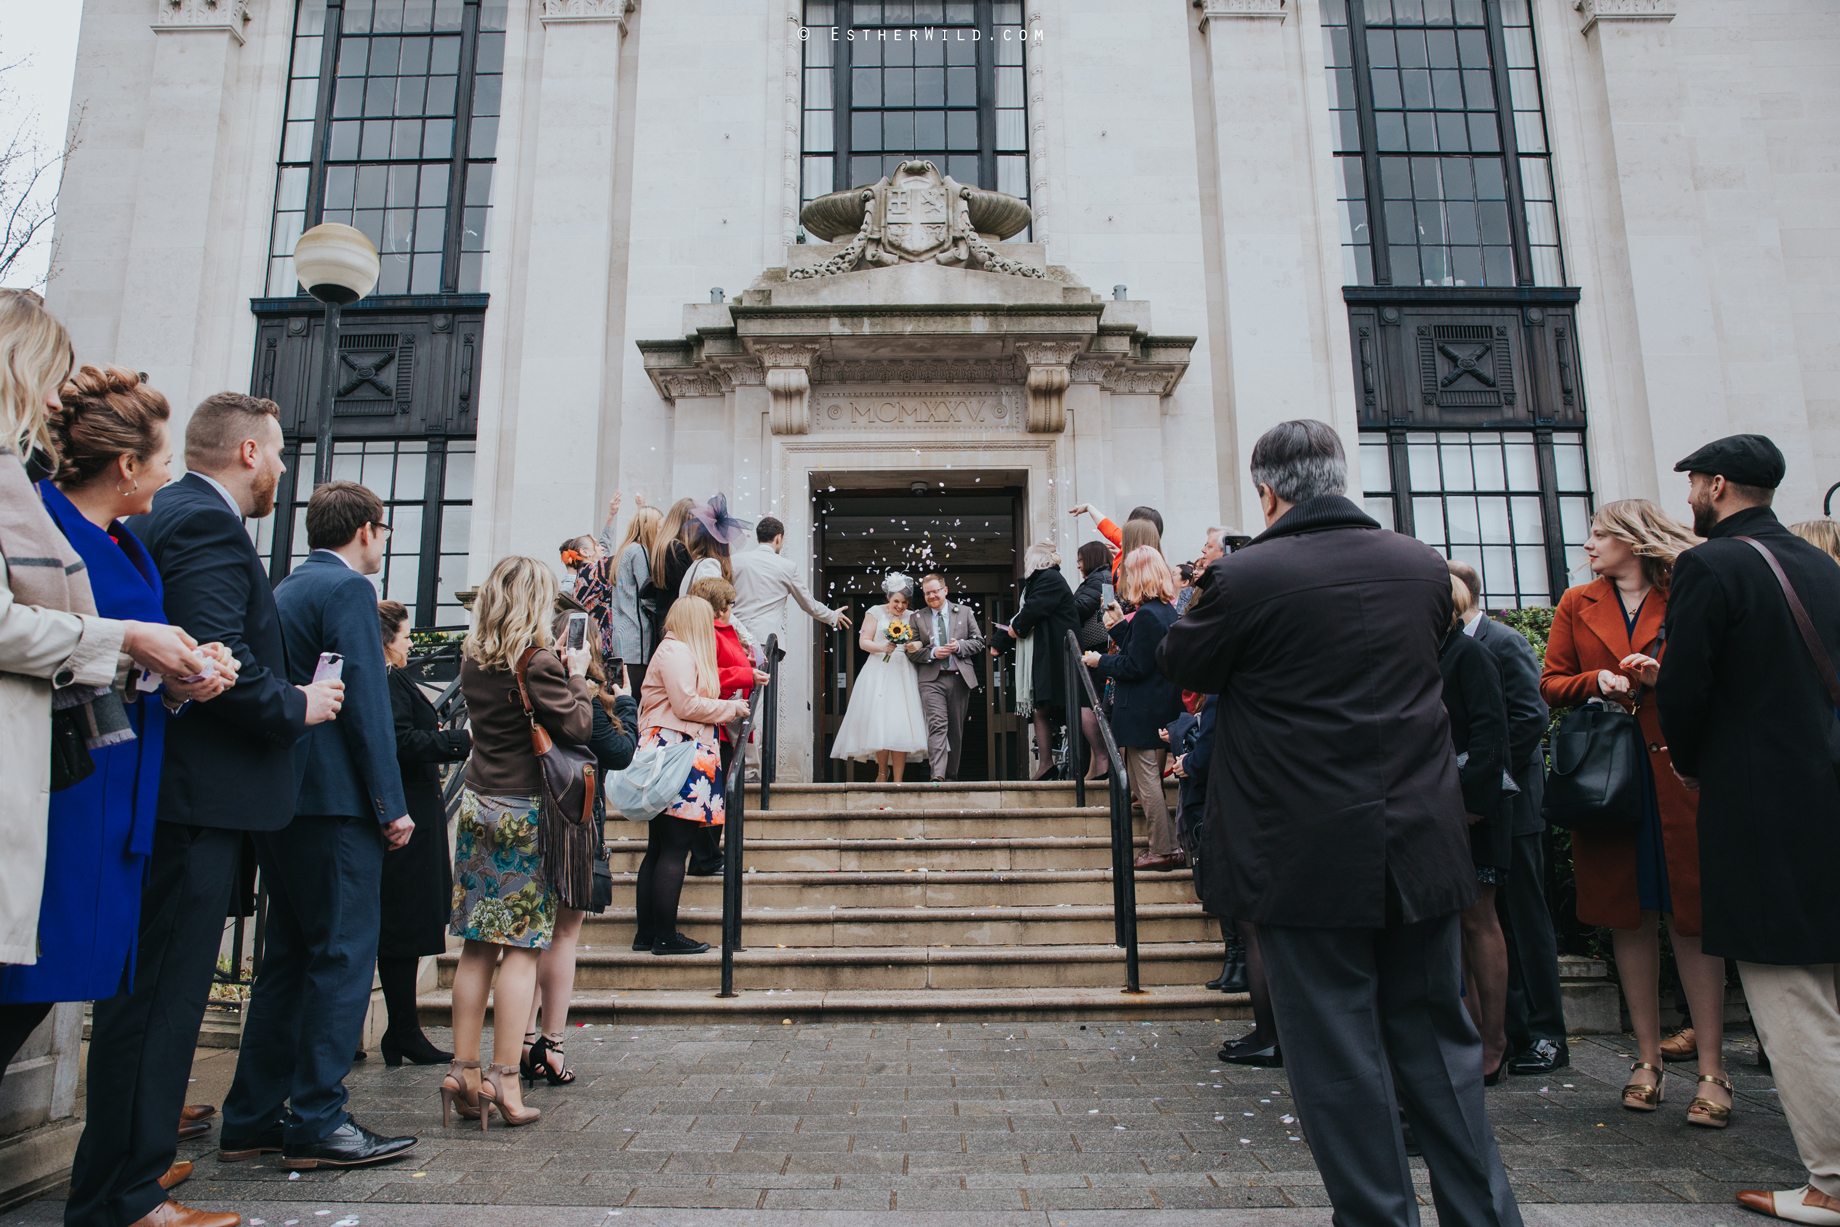 Islington_Town_Hall_Assembly_Hall_Council_Chamber_The_Star_Pub_London_Sacred_Wedding_Copyright_Esther_Wild_Photographer_IMG_0644.jpg